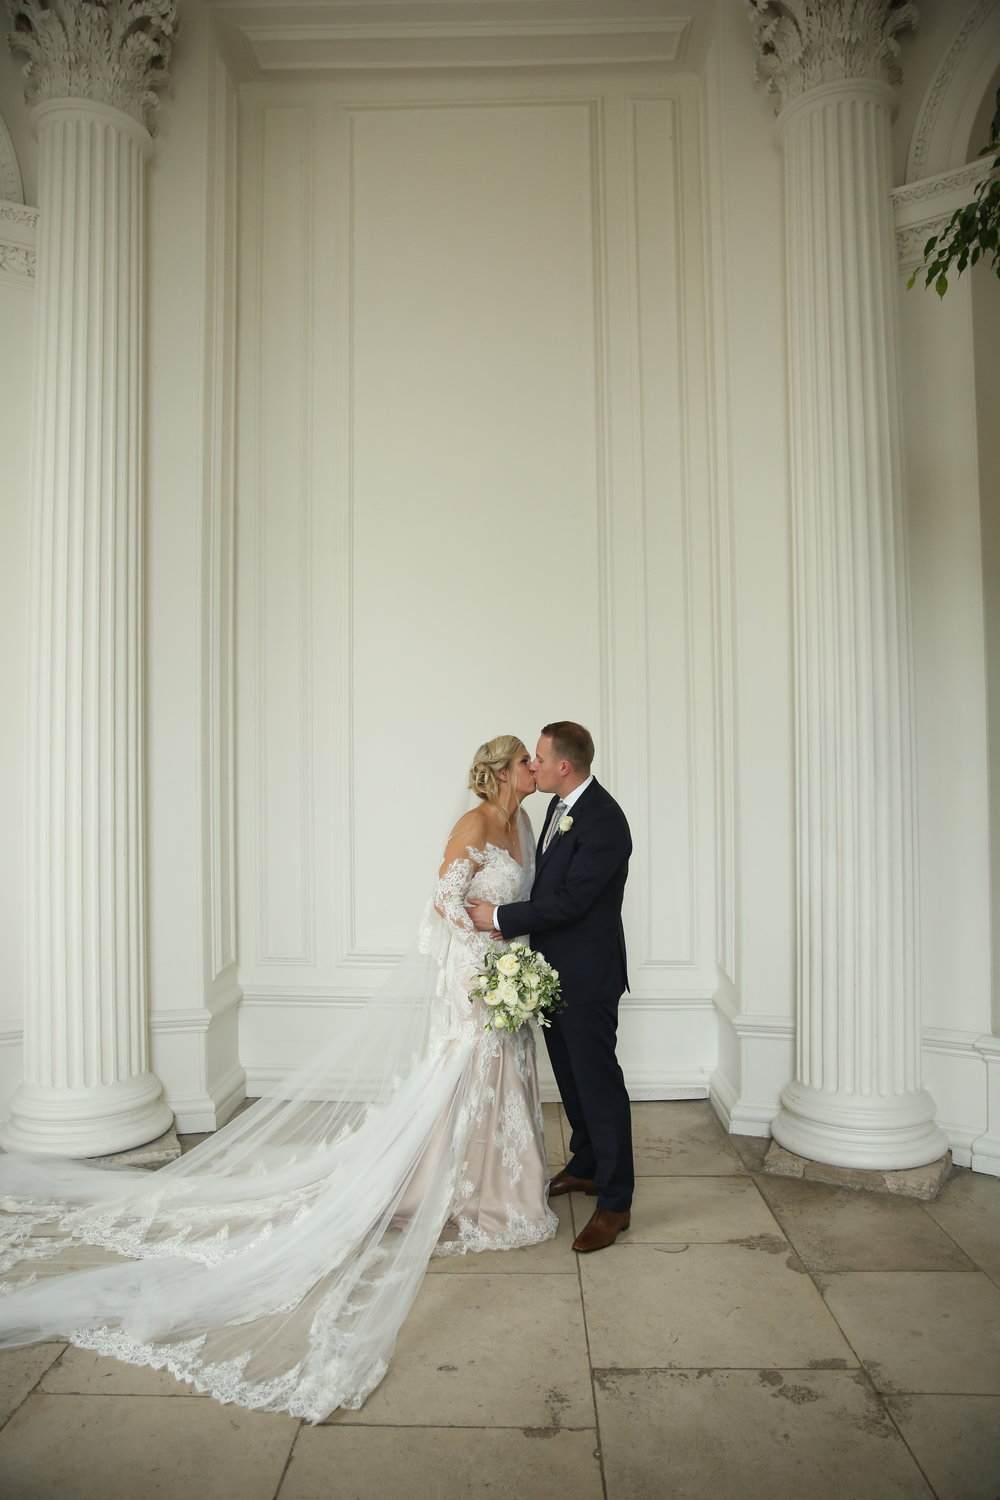 Kensington palace wedding dress